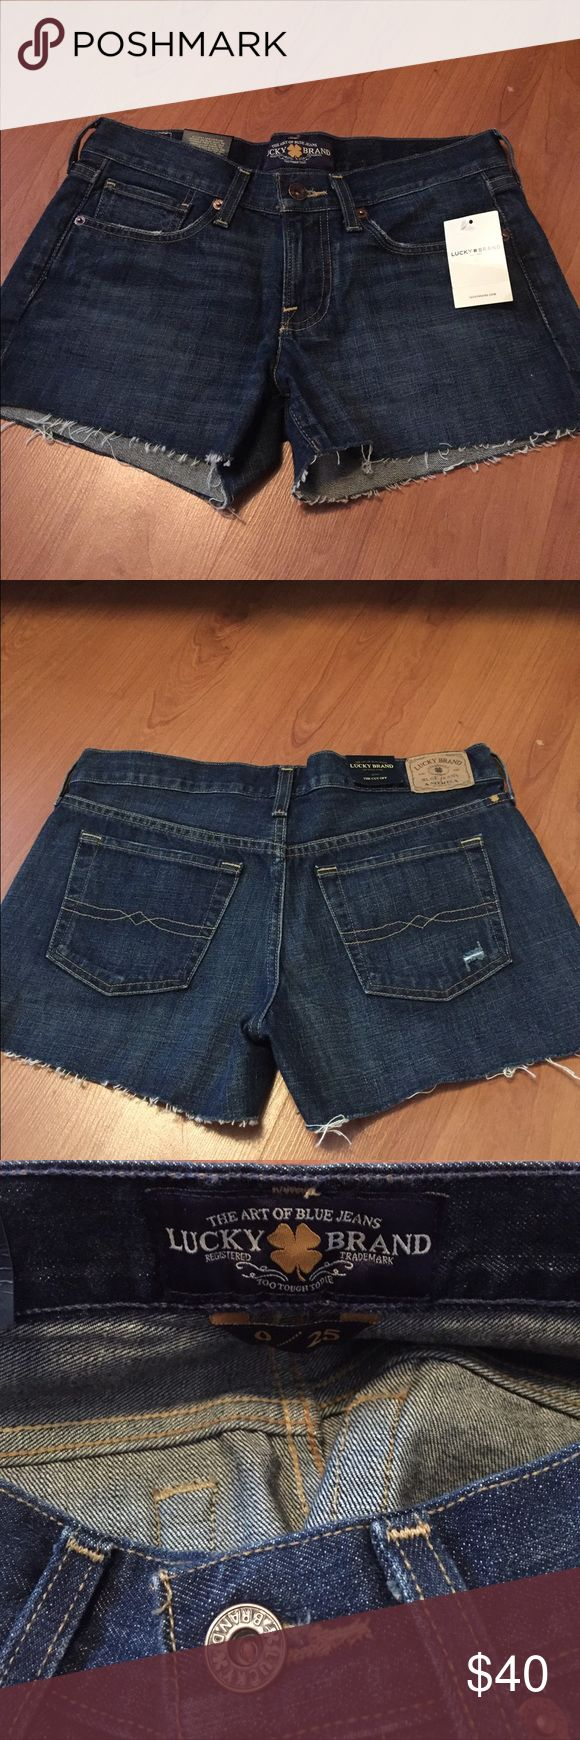 🏈OPEN TO OFFERS!🏈 🍀Lucky 🍀 Brand Shorts🍀 Lucky Brand Shorts Jean Shorts